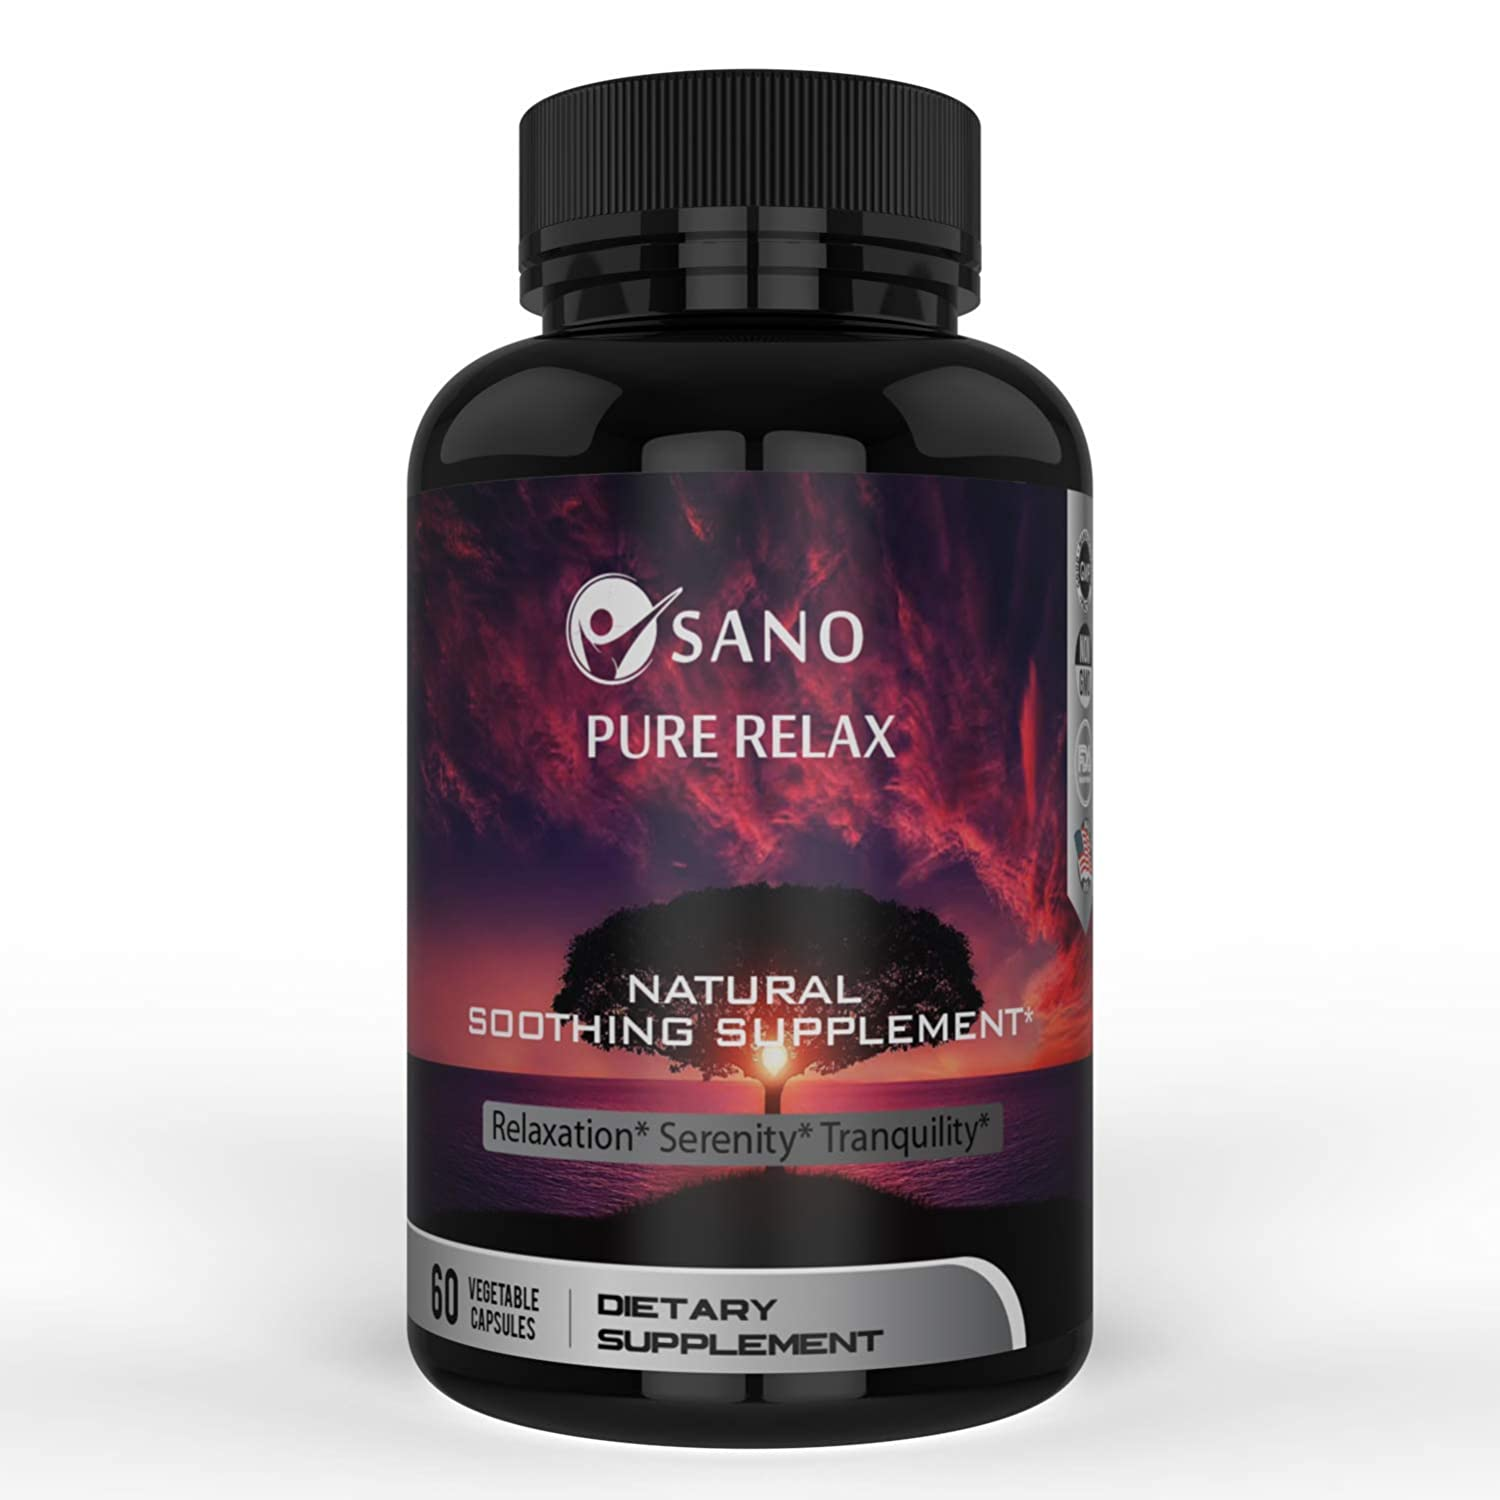 Amazon.com: Sano Nutrition Natural Soothing Supplement: Stress Relief, Relaxation & Anxiety Calm Supplement| Ashwagandha & Vitamins Botanical Blend|Herbal ...